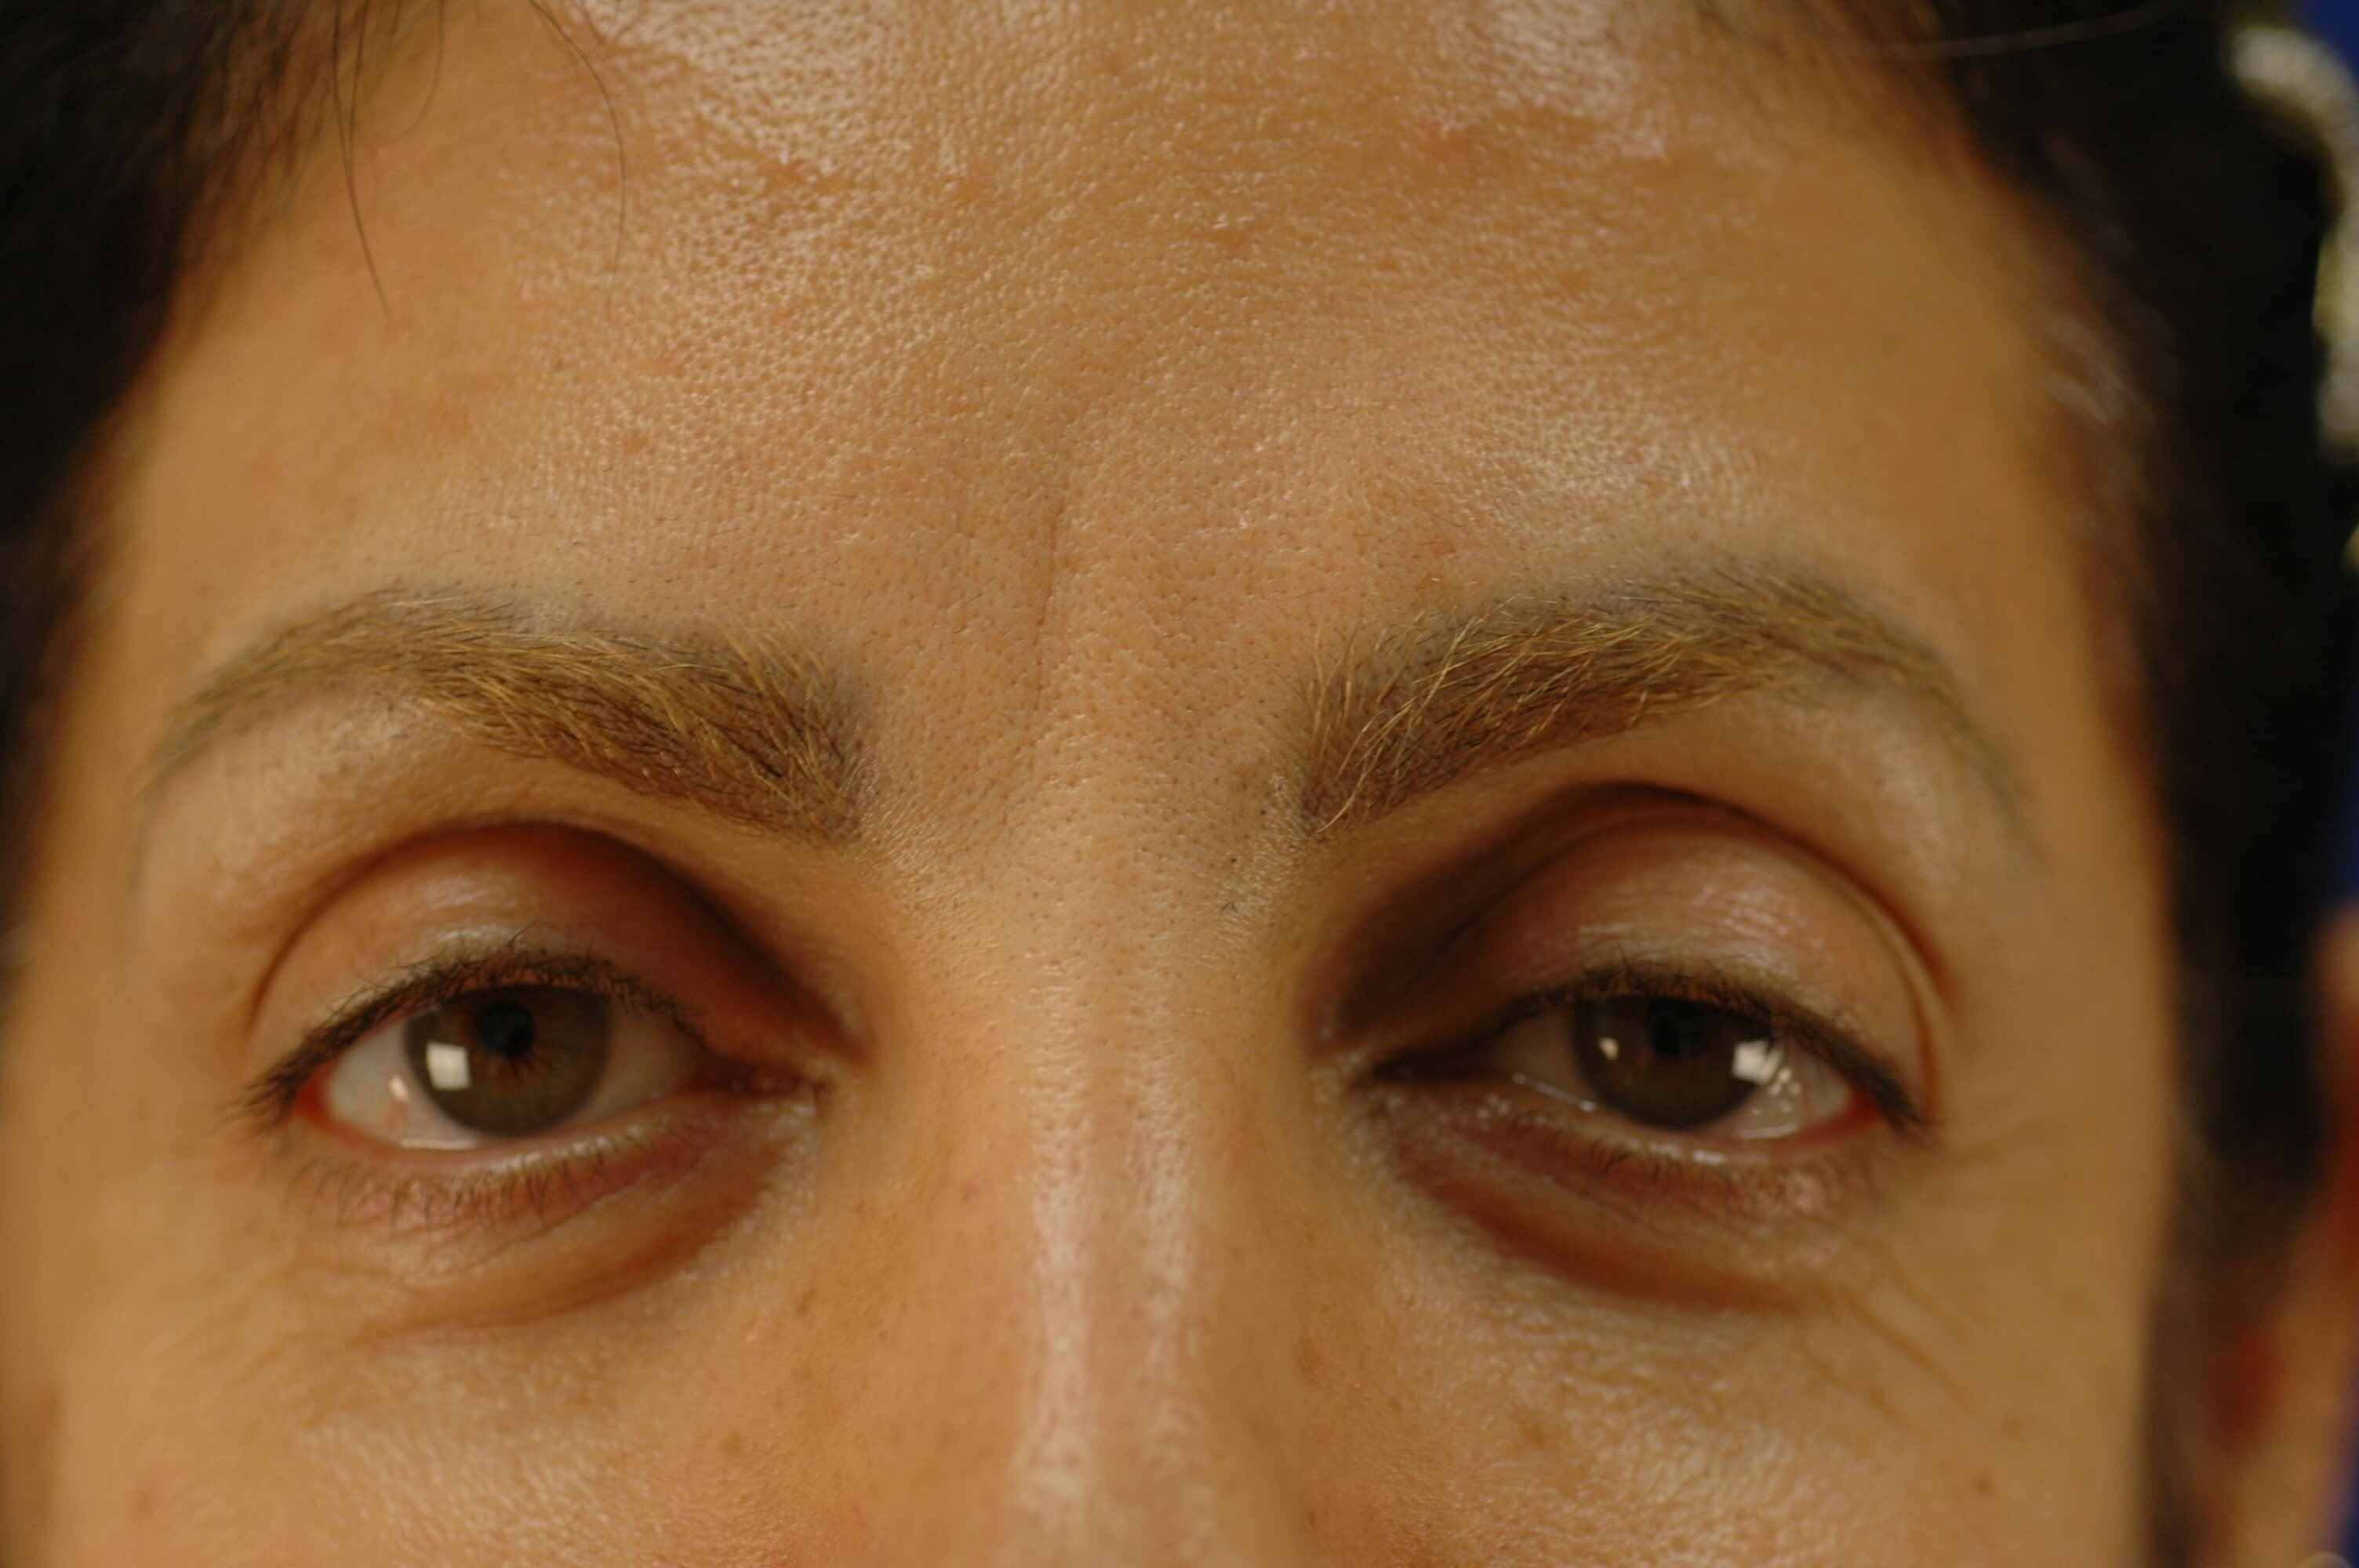 Brow Lift & Tip Rhinoplasty After